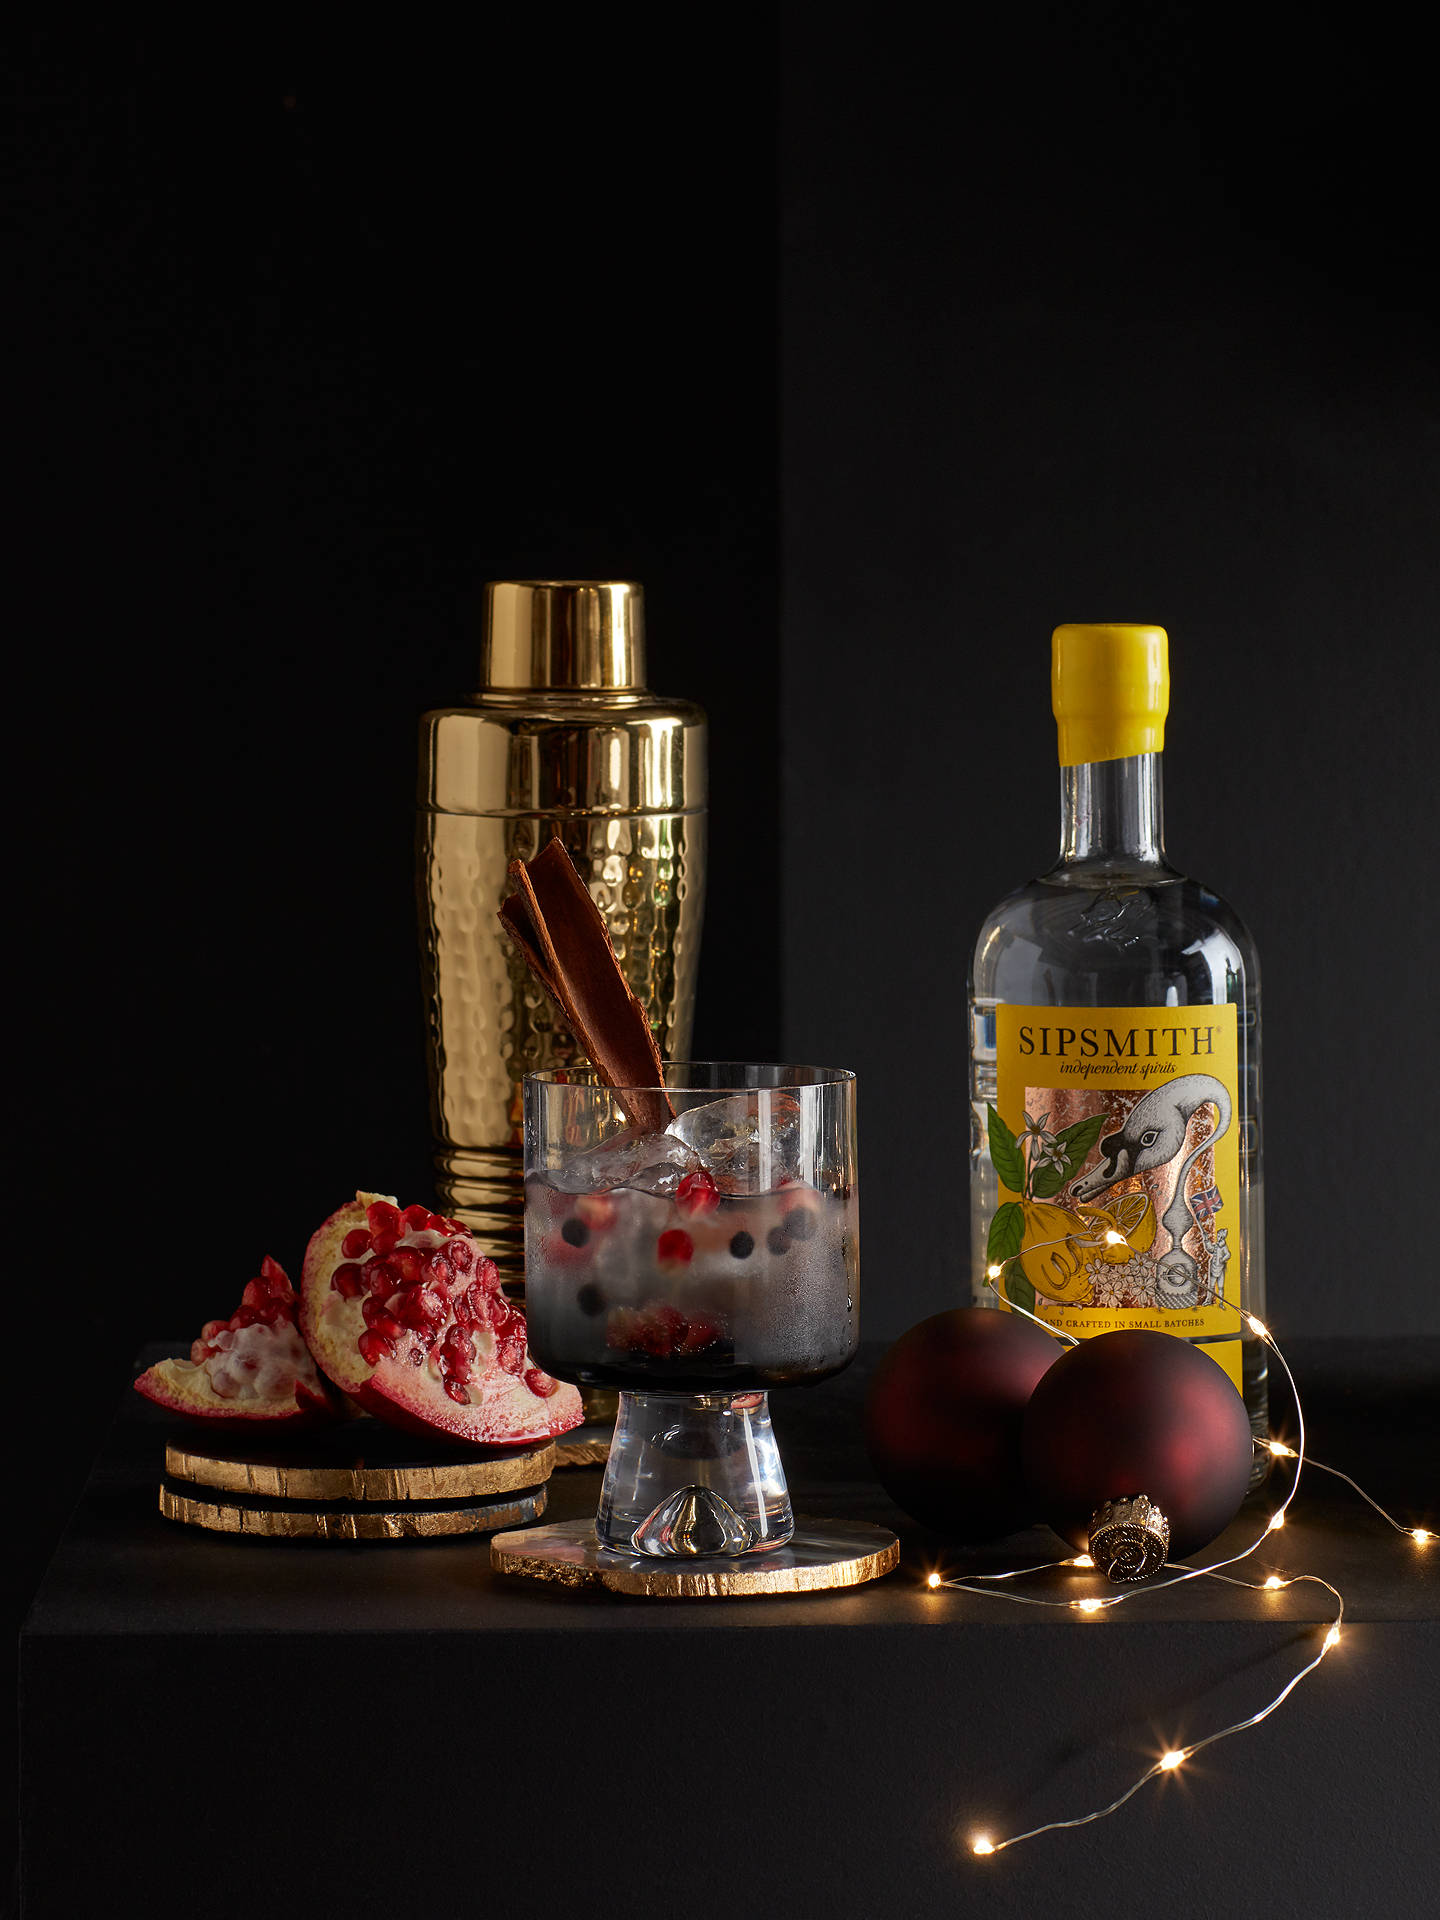 BuySipsmith Lemon Drizzle Gin, 50cl Online at johnlewis.com